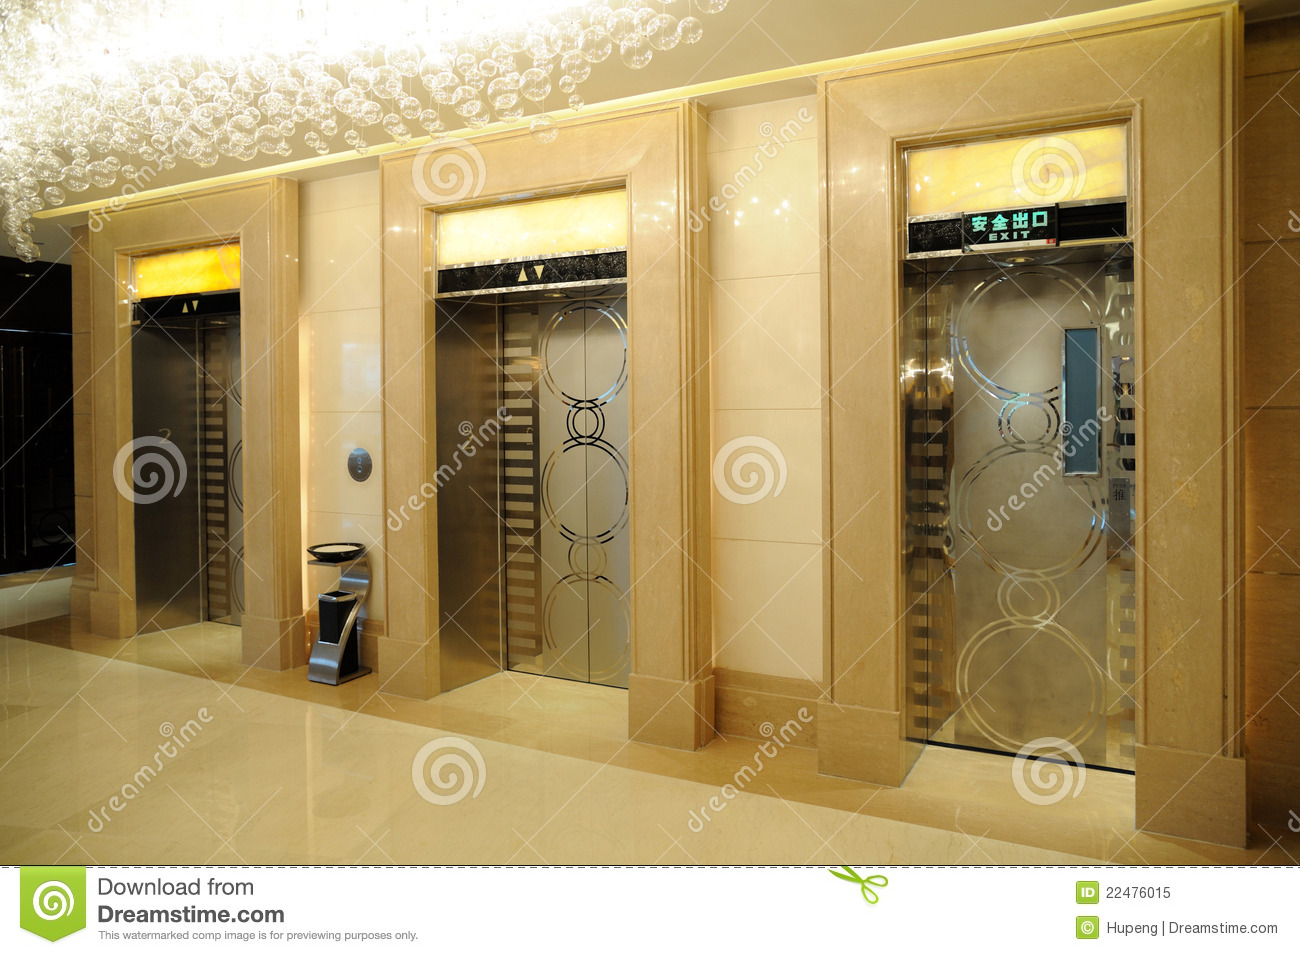 Elevator Entrance Royalty Free Stock Photo Image 22476015